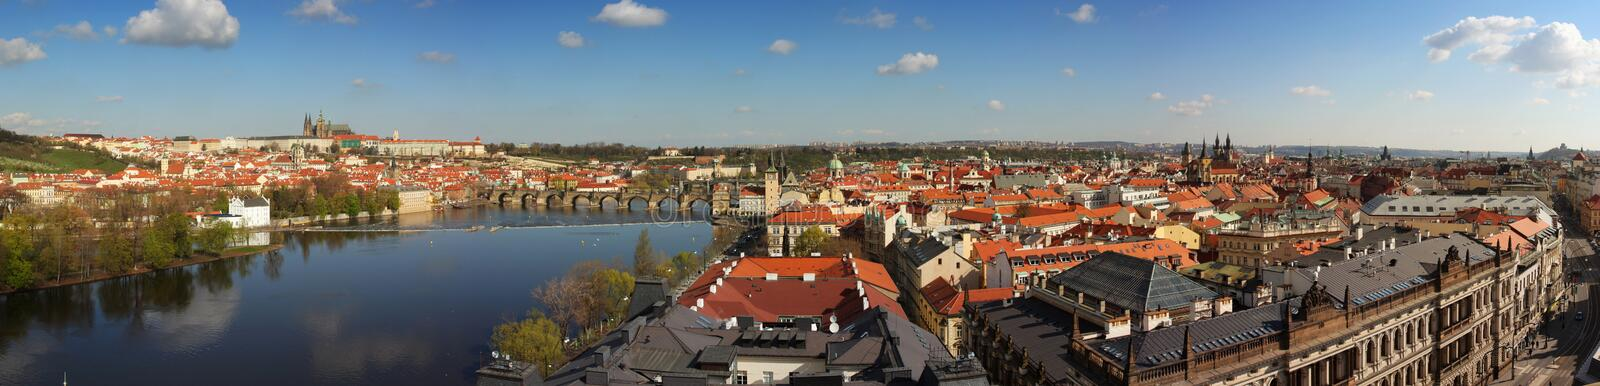 Panorama Praga, Republika Czech